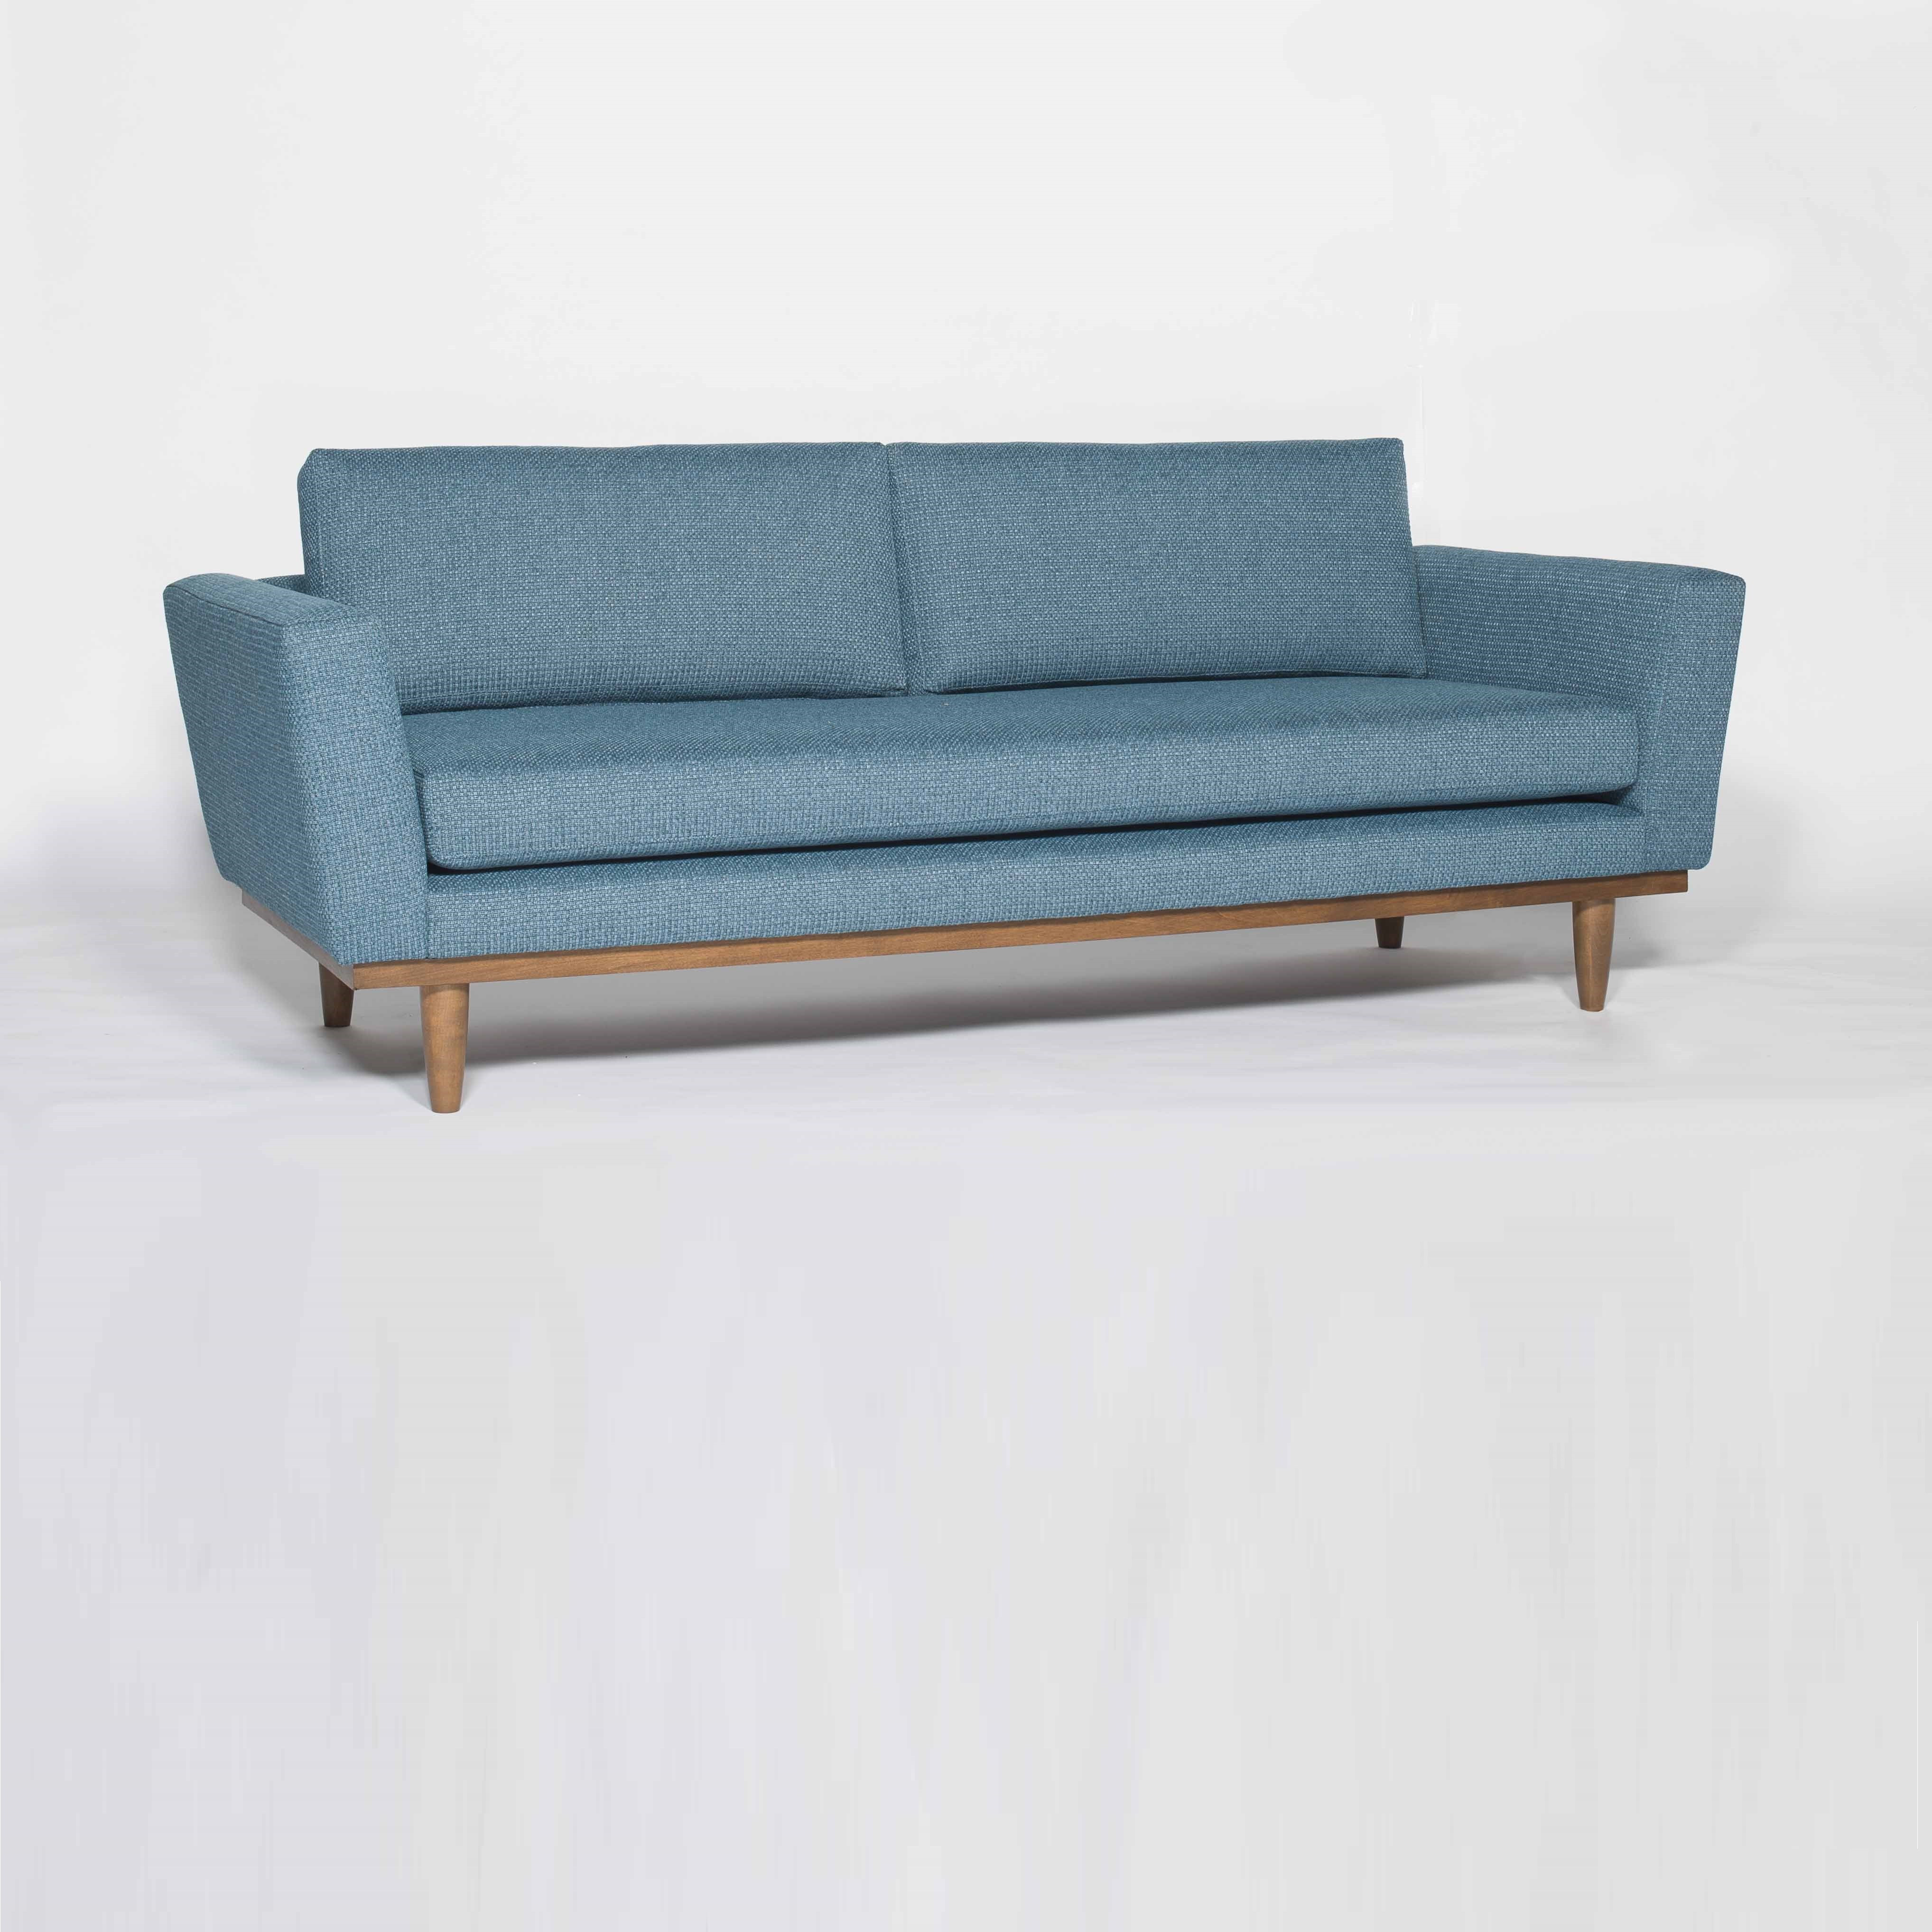 latest sofa with reversible chaise lounge online-Unique sofa with Reversible Chaise Lounge Inspiration